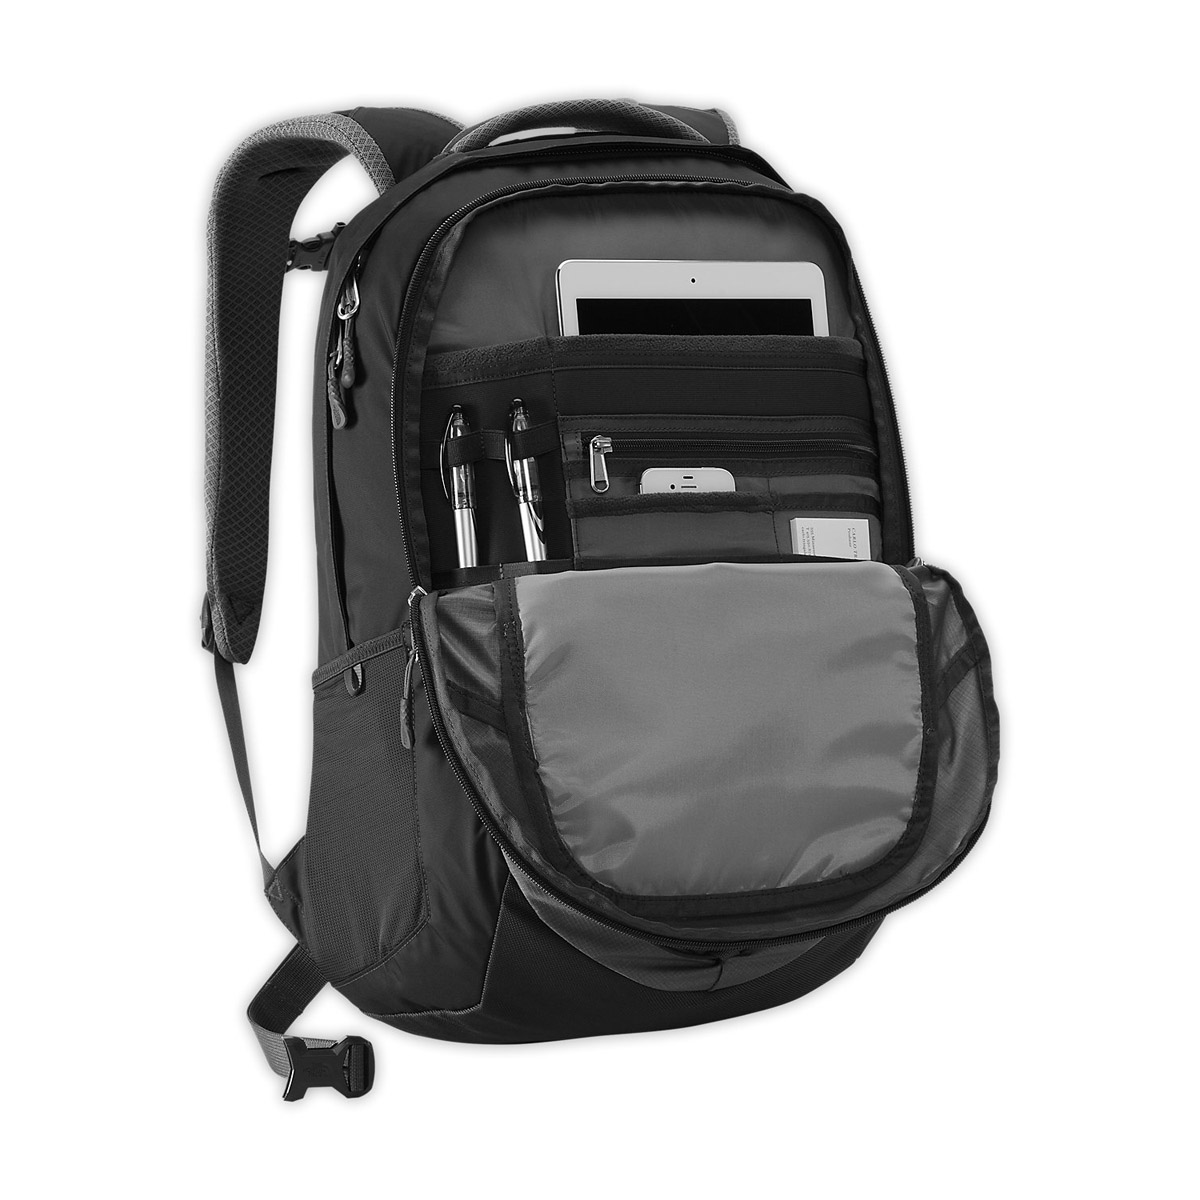 628917923d Sac à dos The North Face Borealis Black | Terres Extrêmes